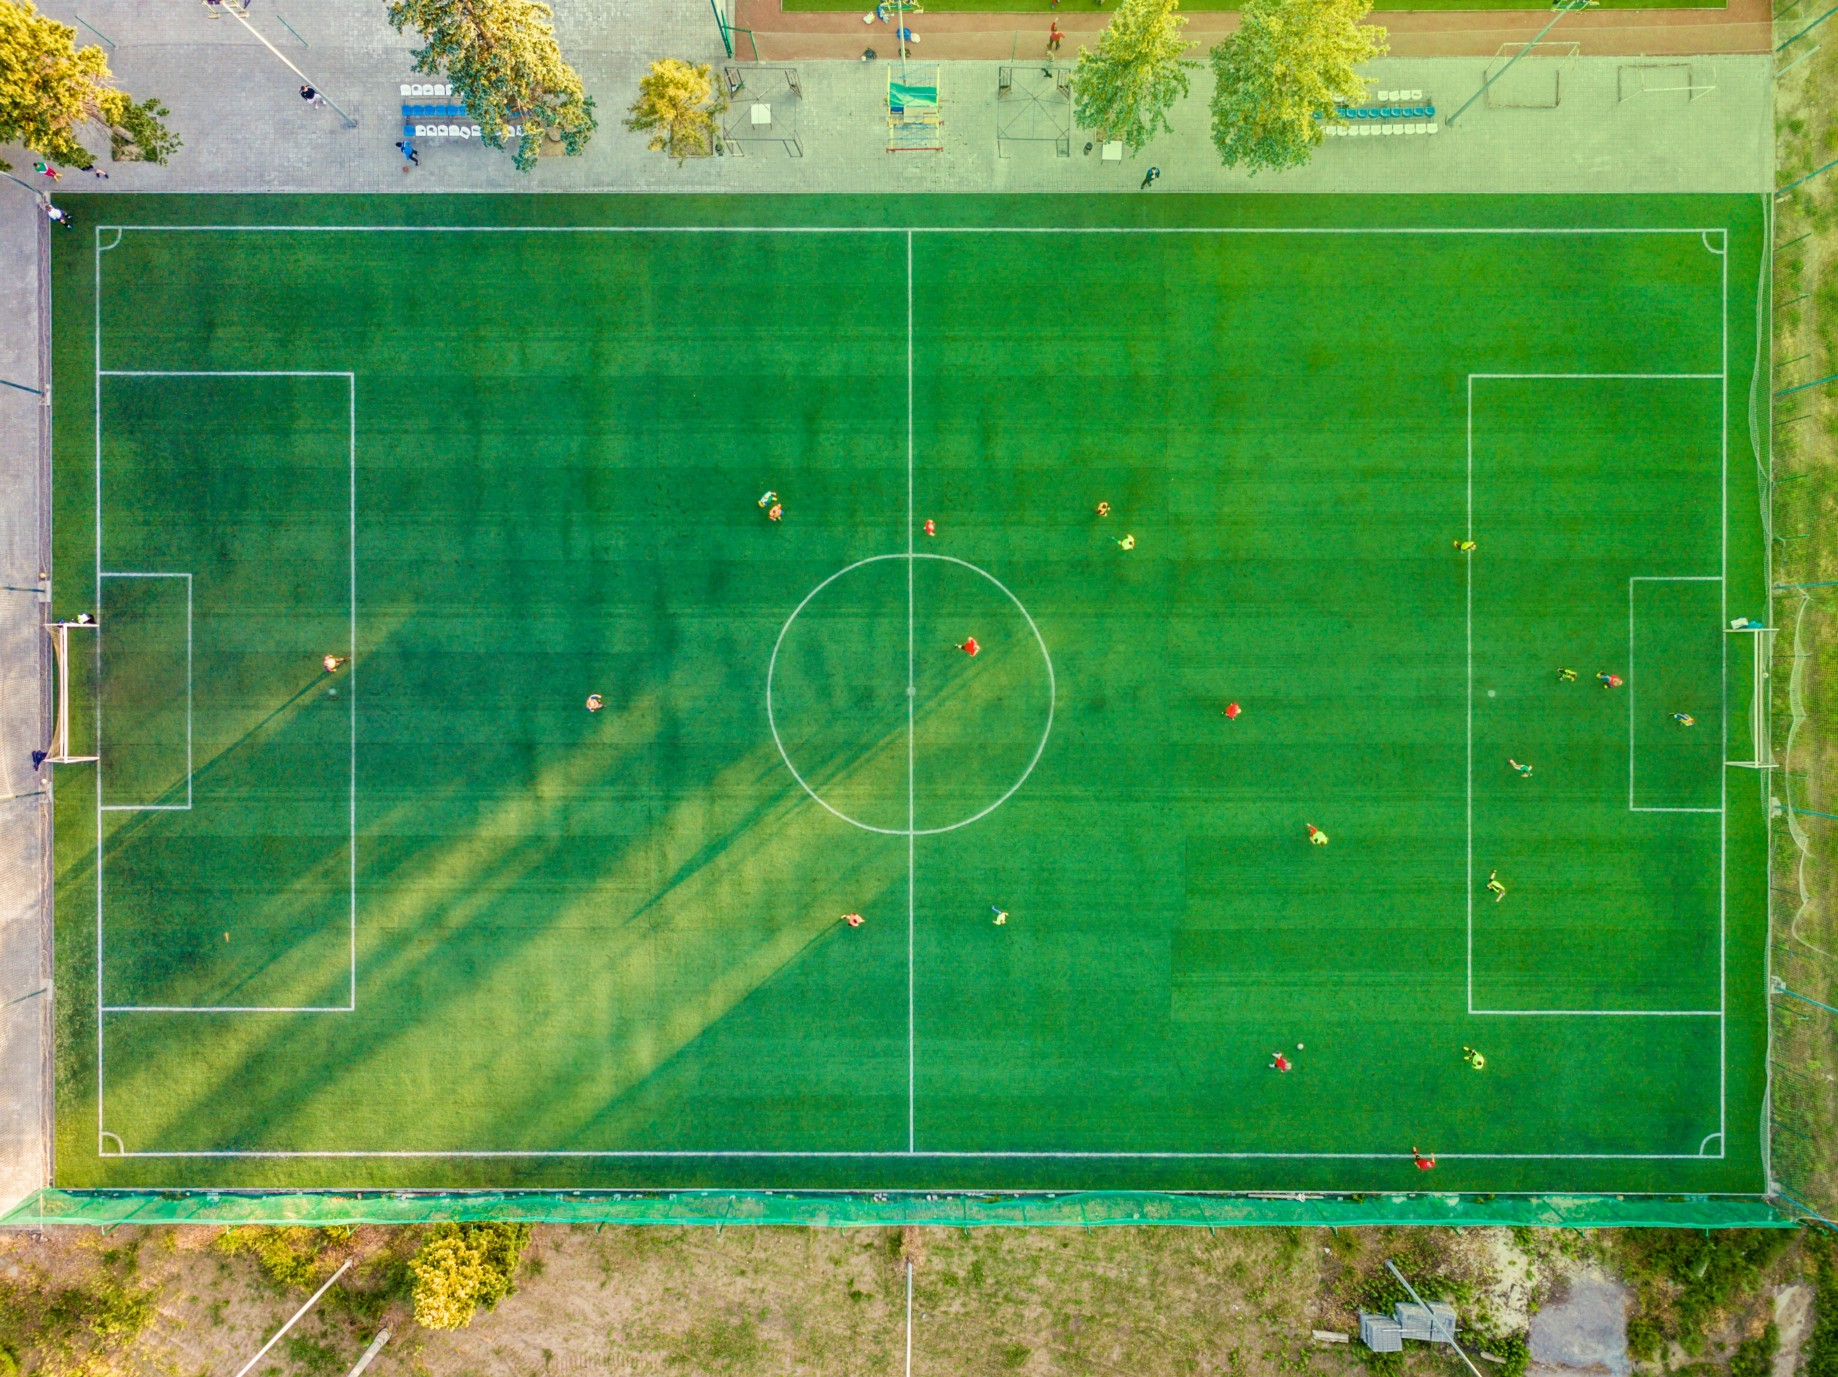 Don't score just yet, Messi! - Towards Data Science